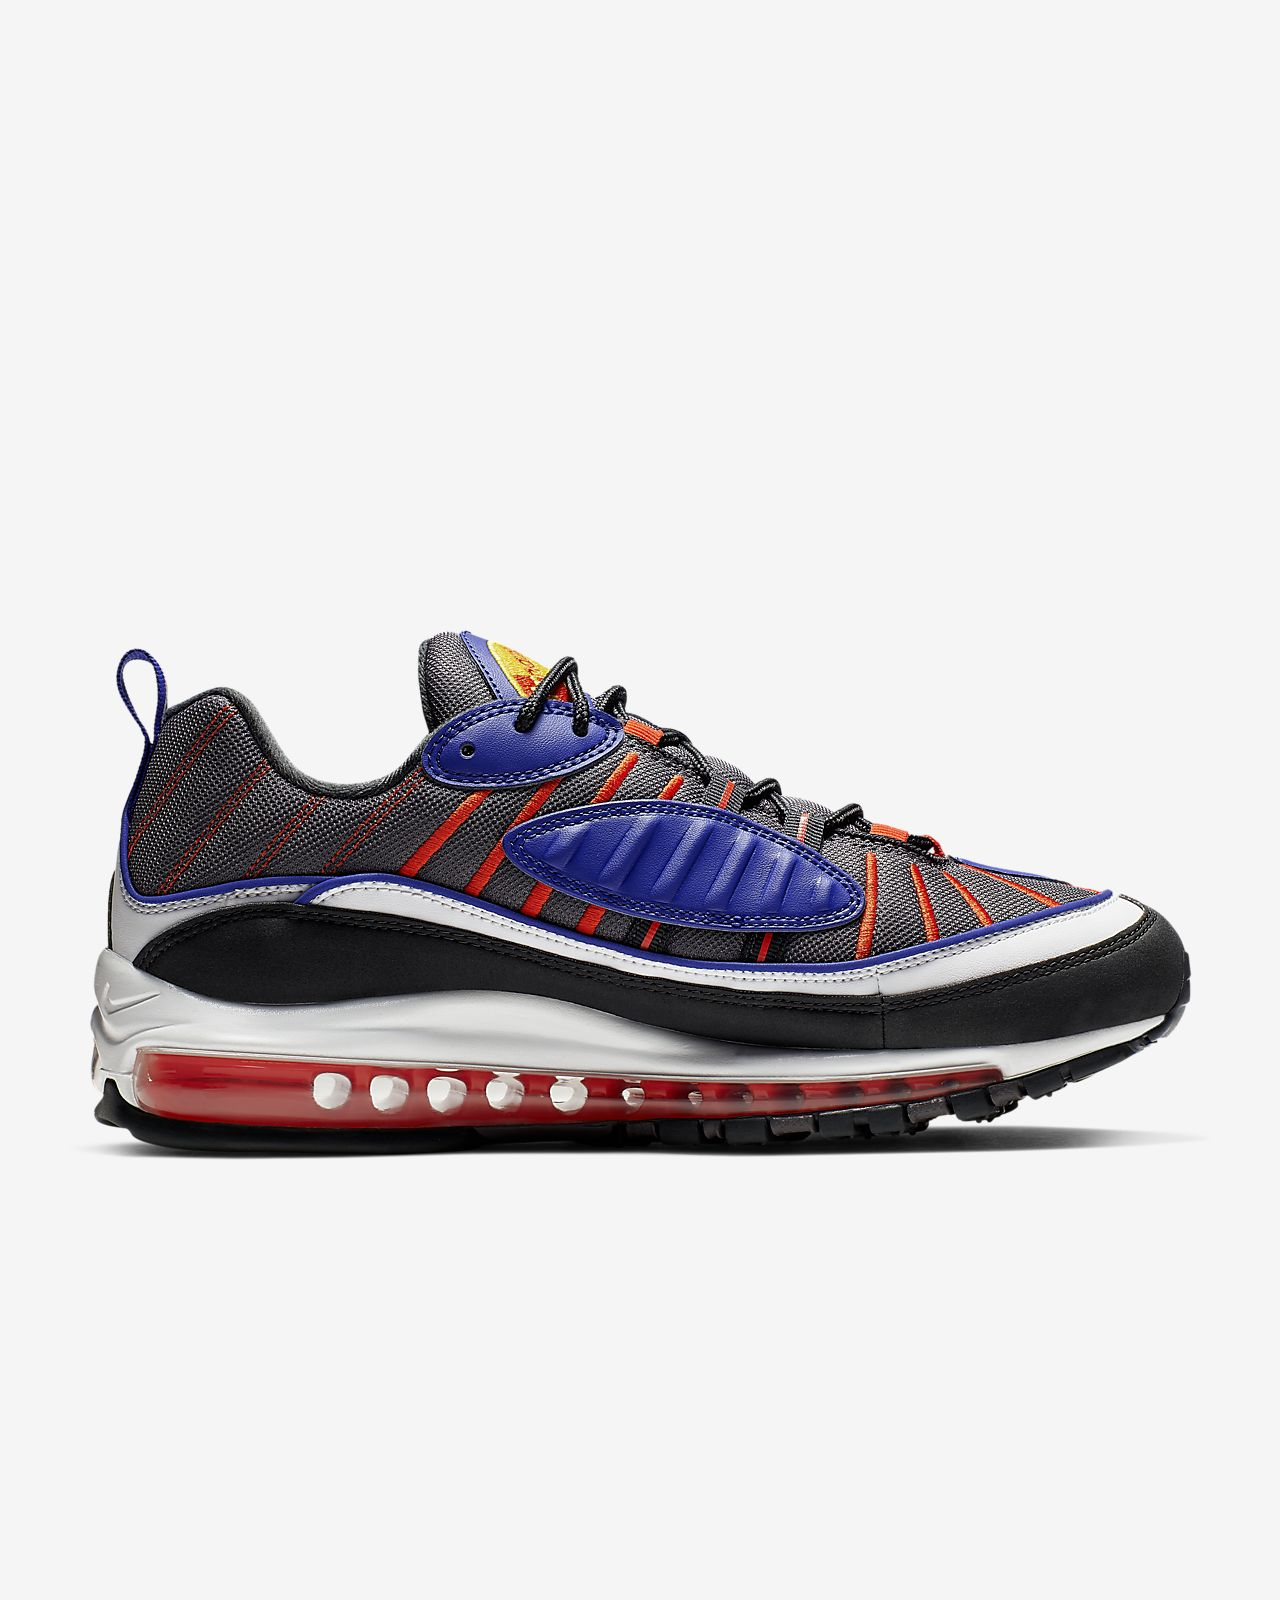 reputable site b039a cee6d ... Chaussure Nike Air Max 98 pour Homme